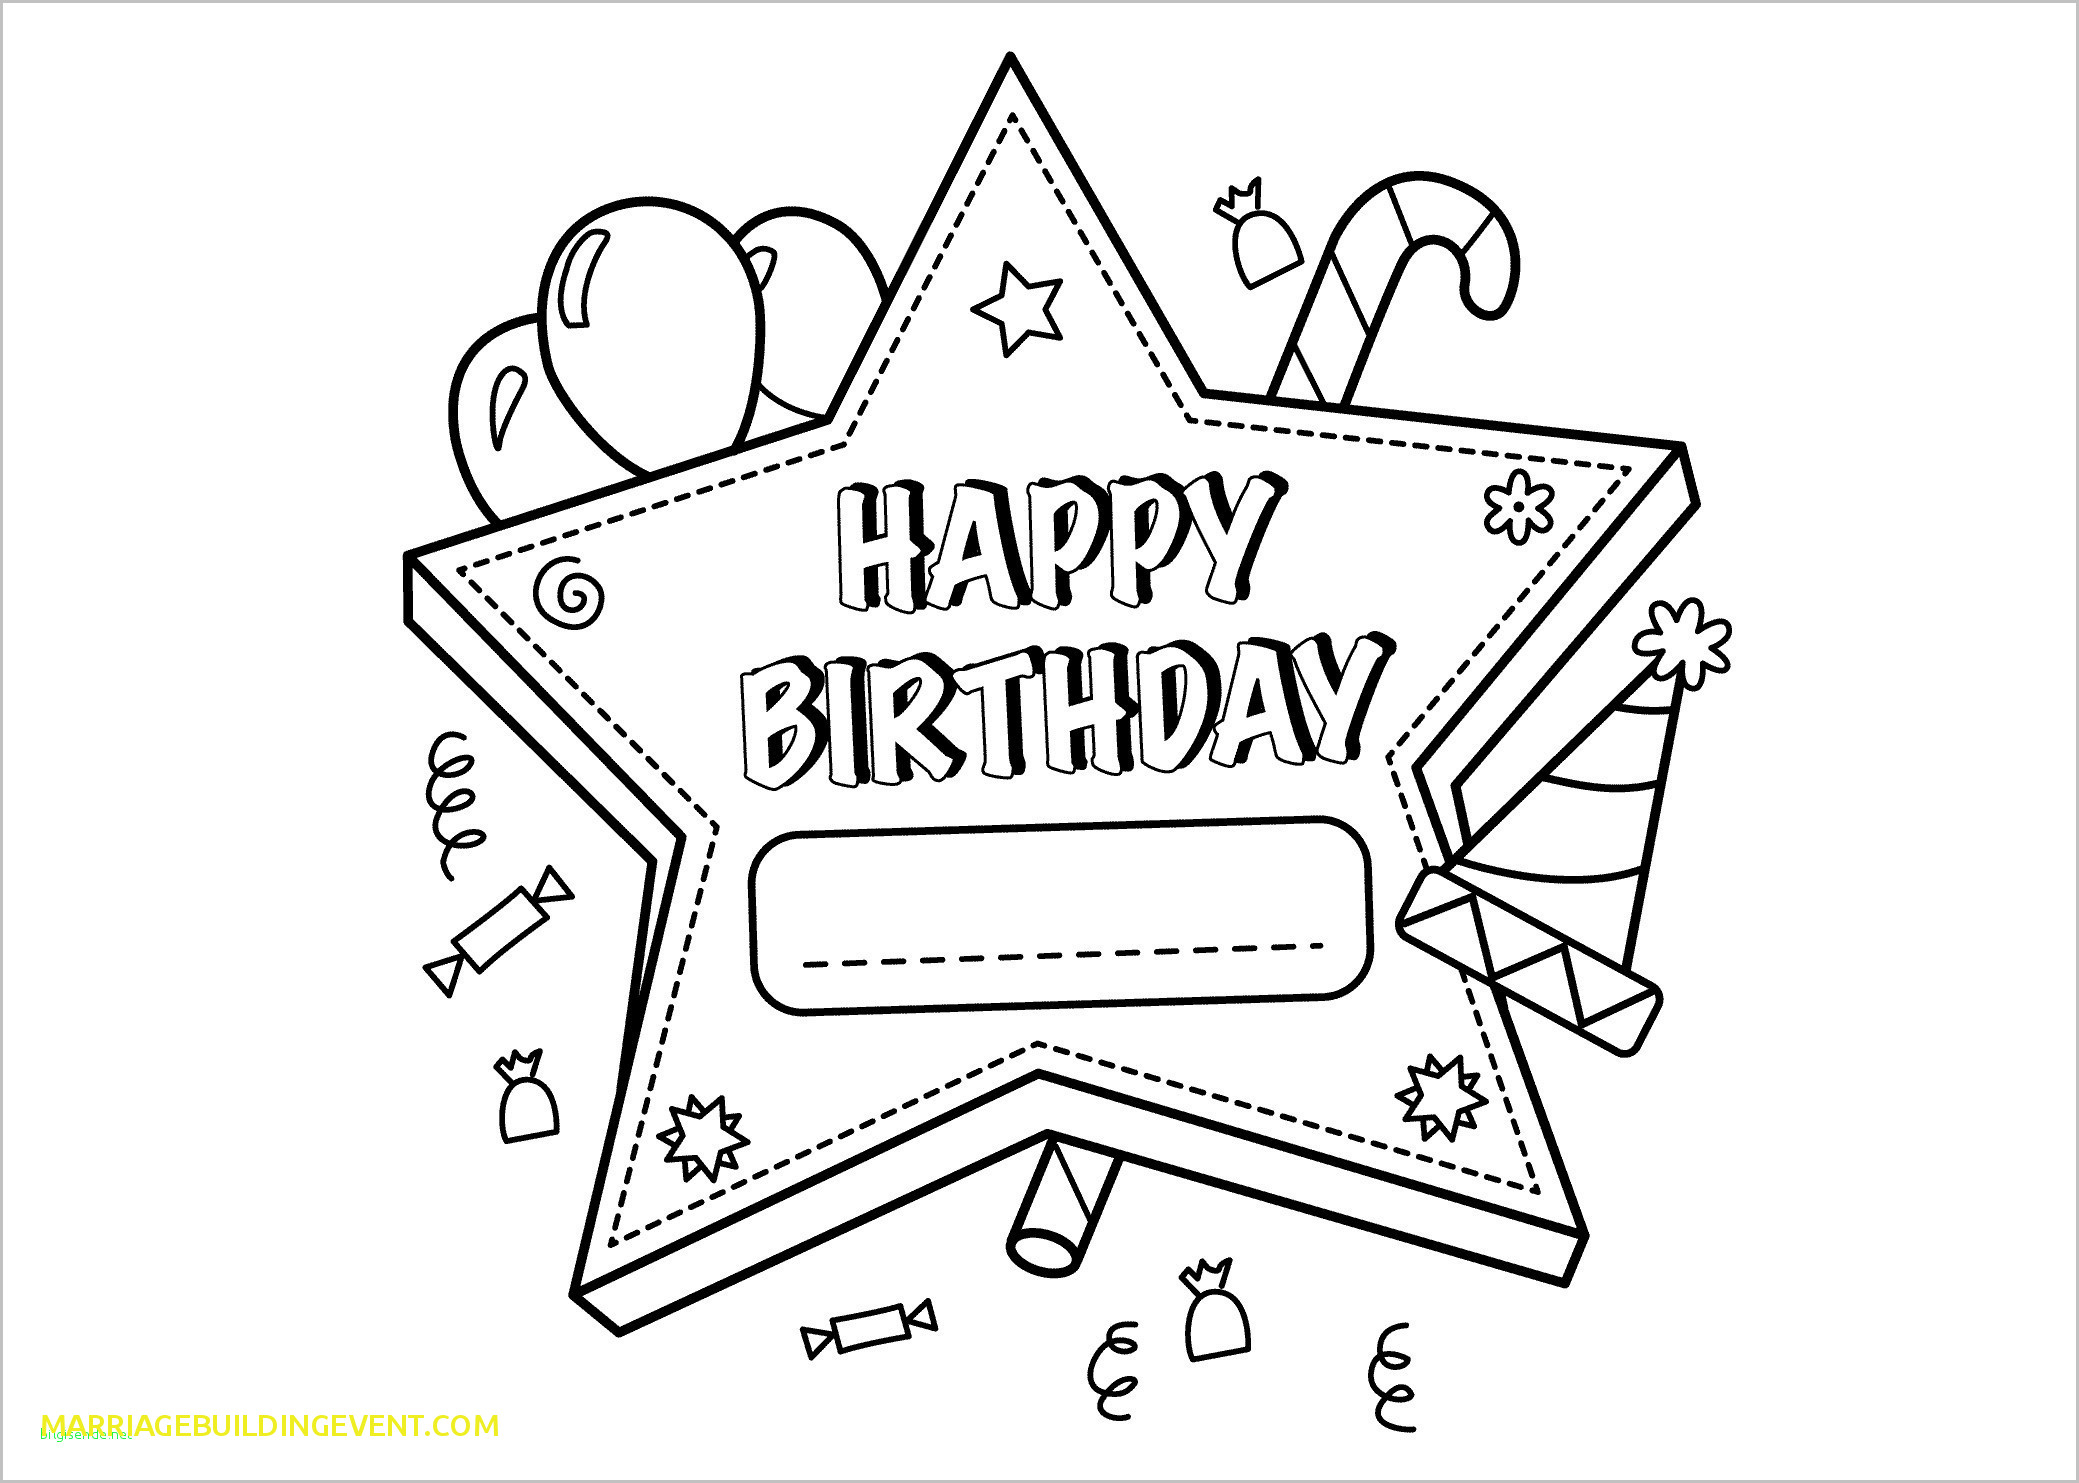 Coloring Pages For Birthday Happy Birthday Mickey Mouse Coloring Pages Awesome Mickey Mouse